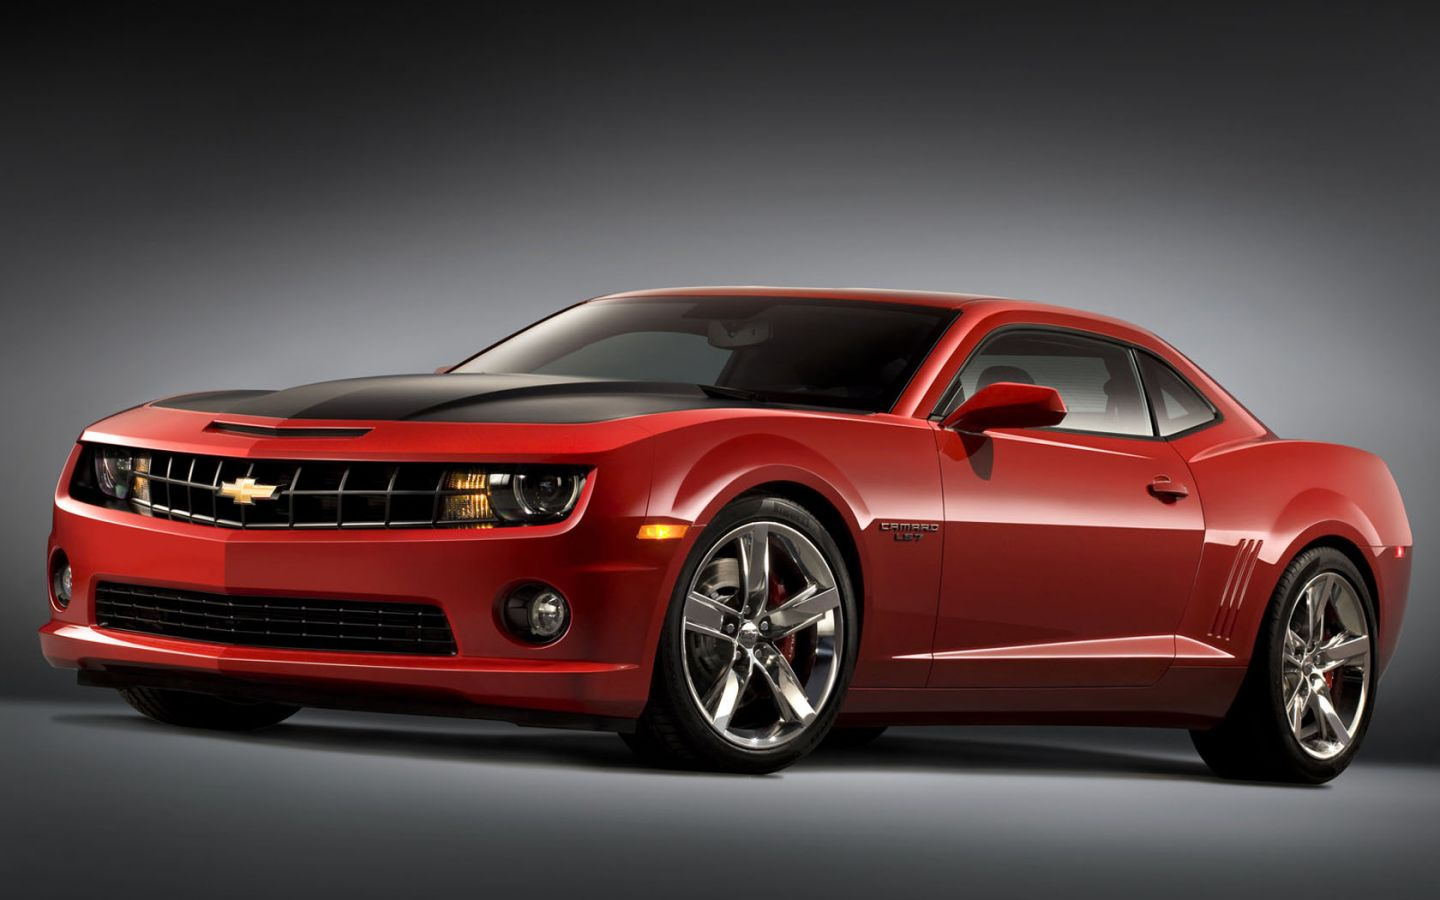 Chevy camaro hd wallpapers Chevrolet Camaro SS 1440x900